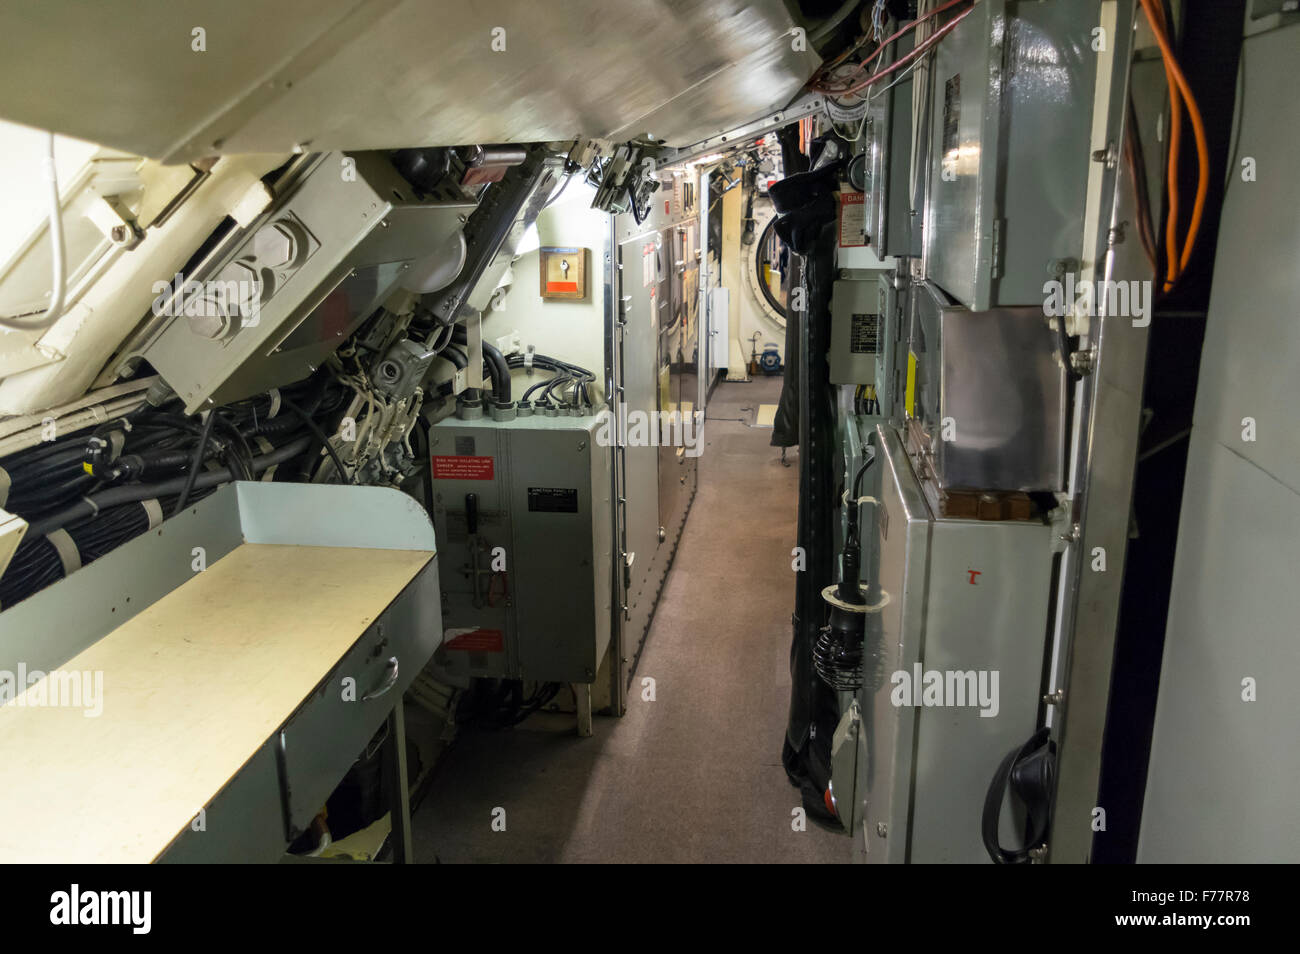 Inside the Royal Australian Navy submarine HMAS Ovens, on display in the Western Australian Maritime Museum, Fremantle. - Stock Image